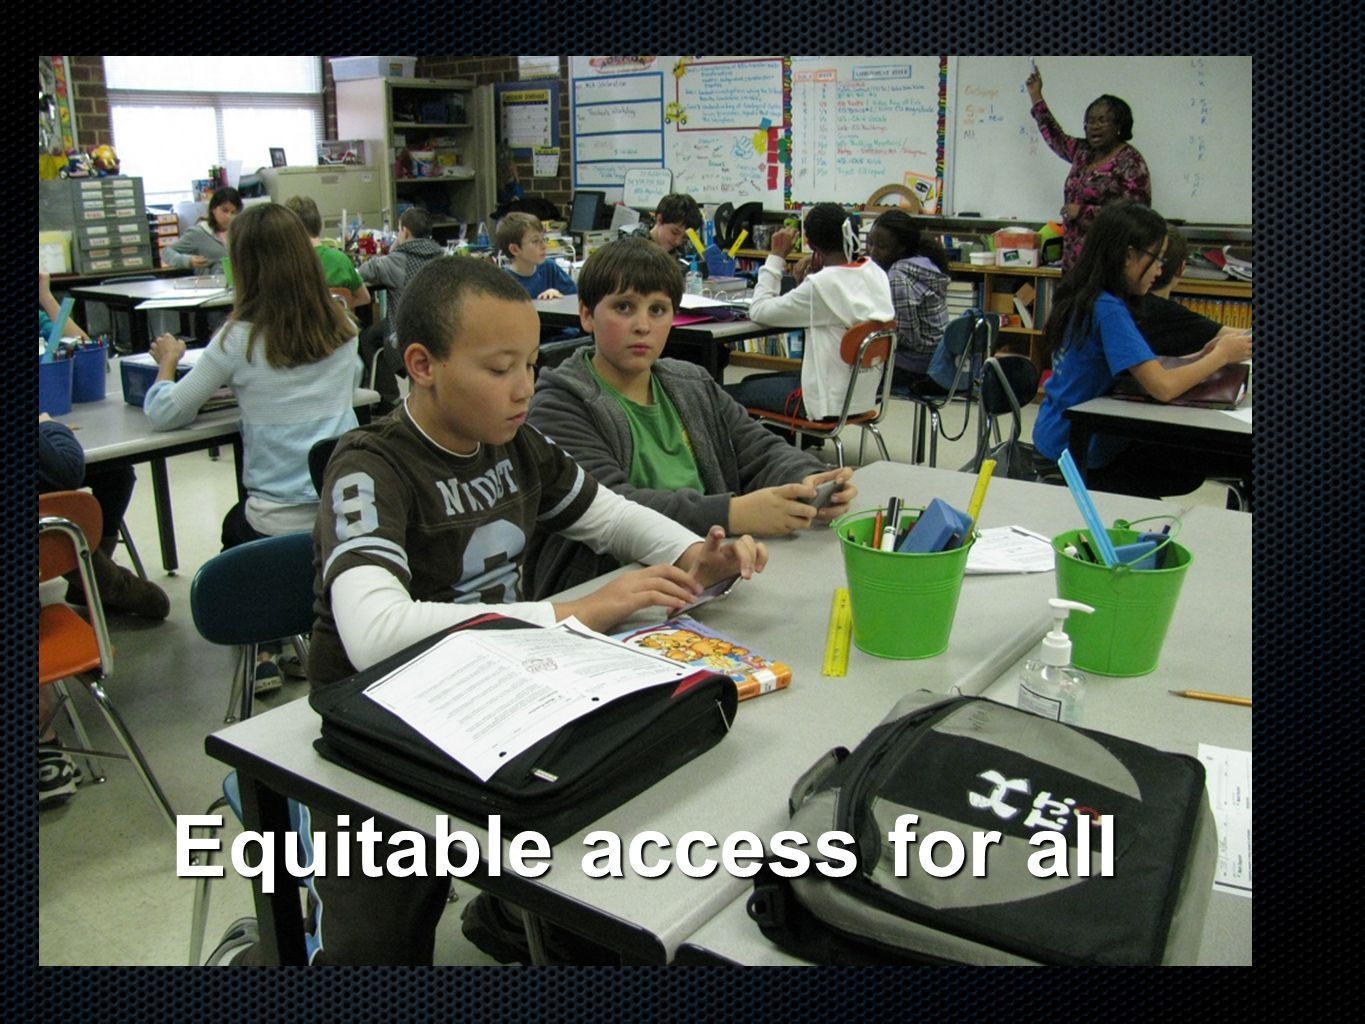 Equitable access for all